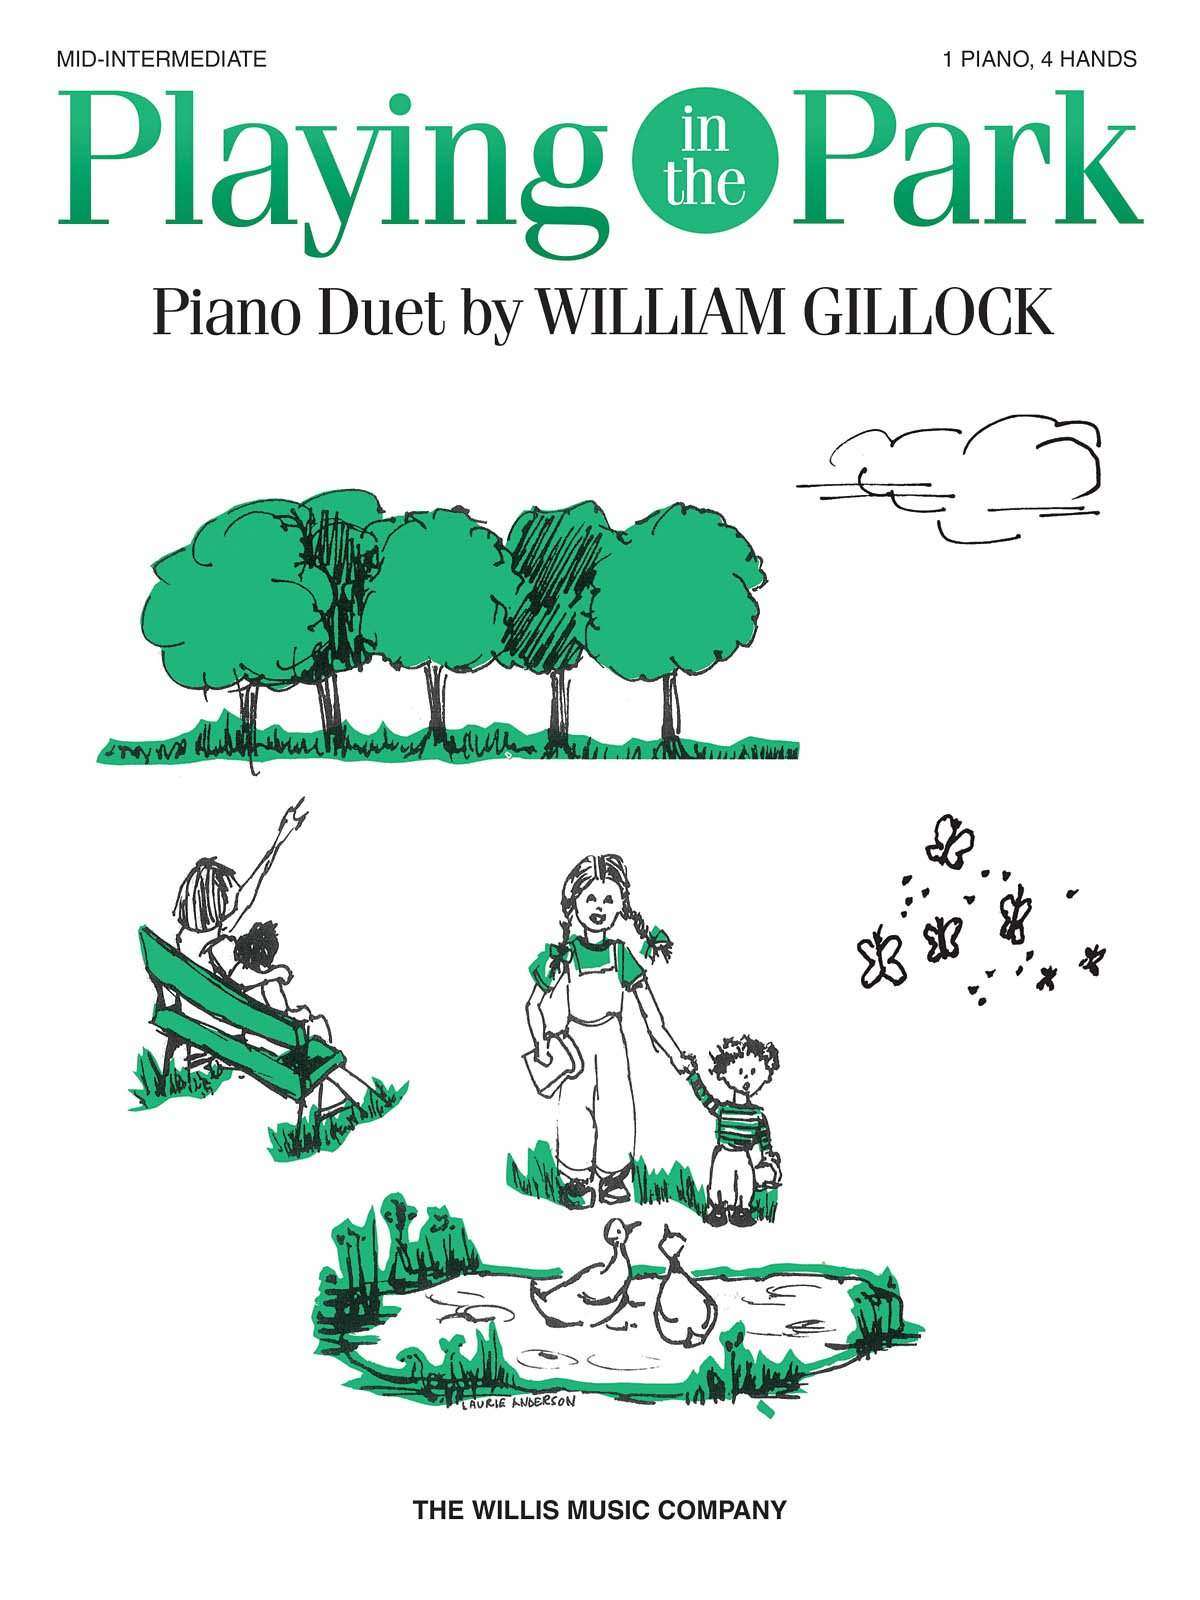 Download Playing in the Park William Gillock 1 Piano, 4 Hands Early to Mid-Intermediate Level pdf epub